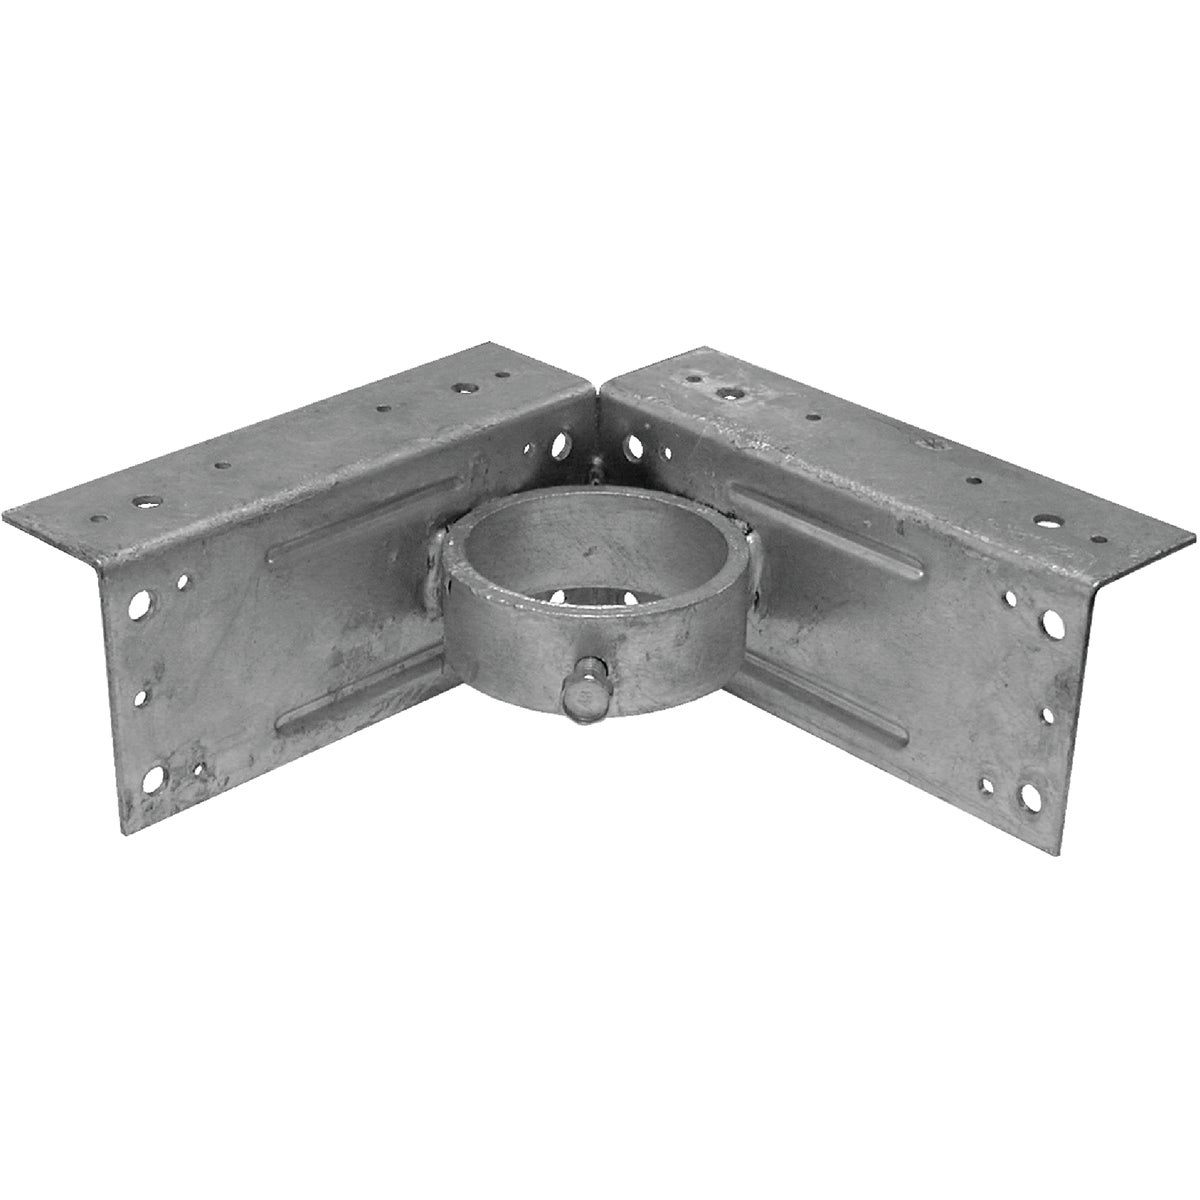 CL WOOD CORNER CLAMP - 328595C by Midwest Air Tech